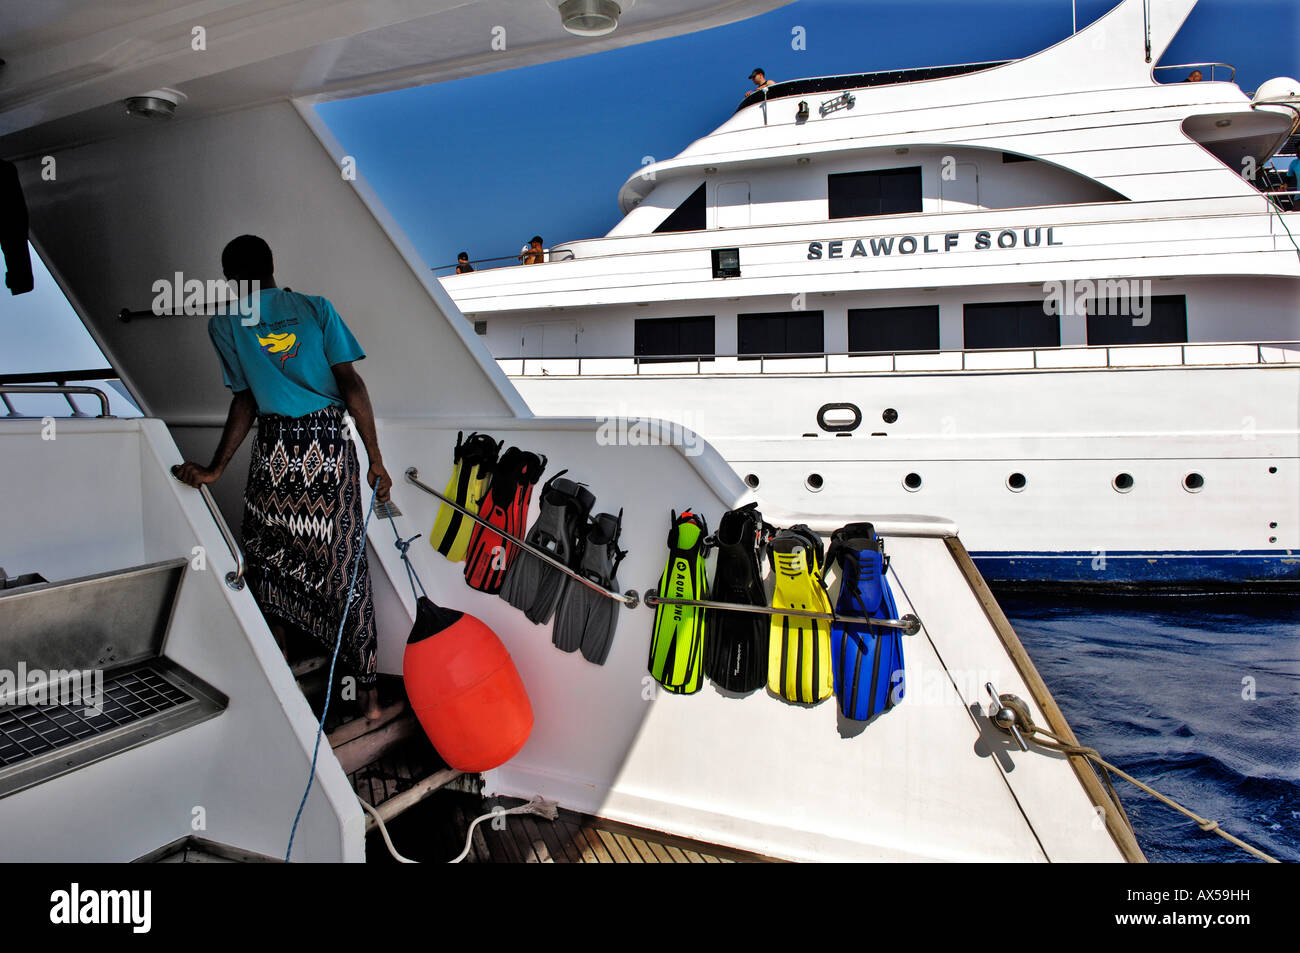 Tourist diving ship waiting for divers, Red sea, Egypt - Stock Image